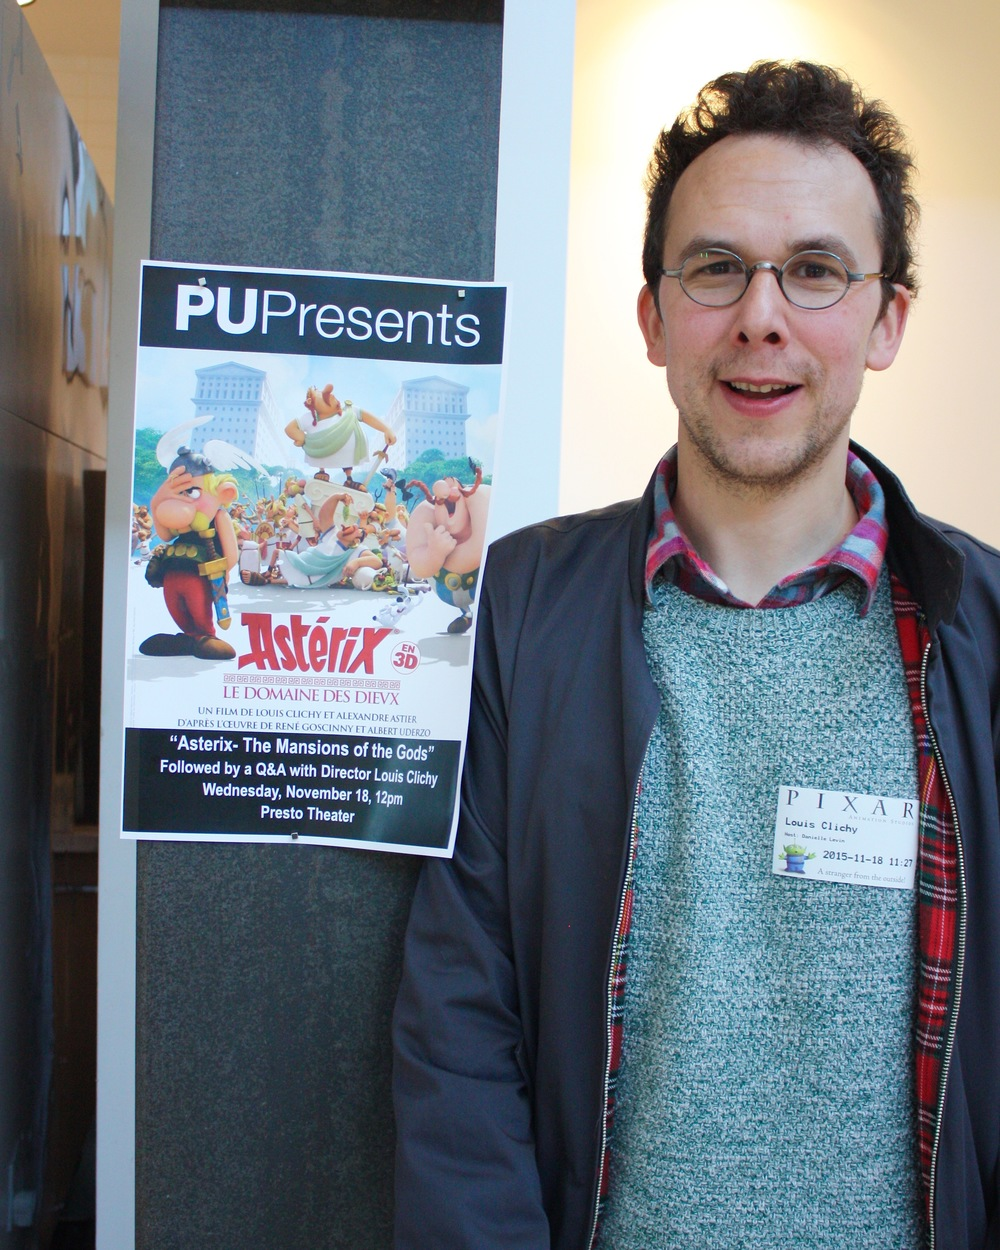 Bringing Asterix to the Pixar campus